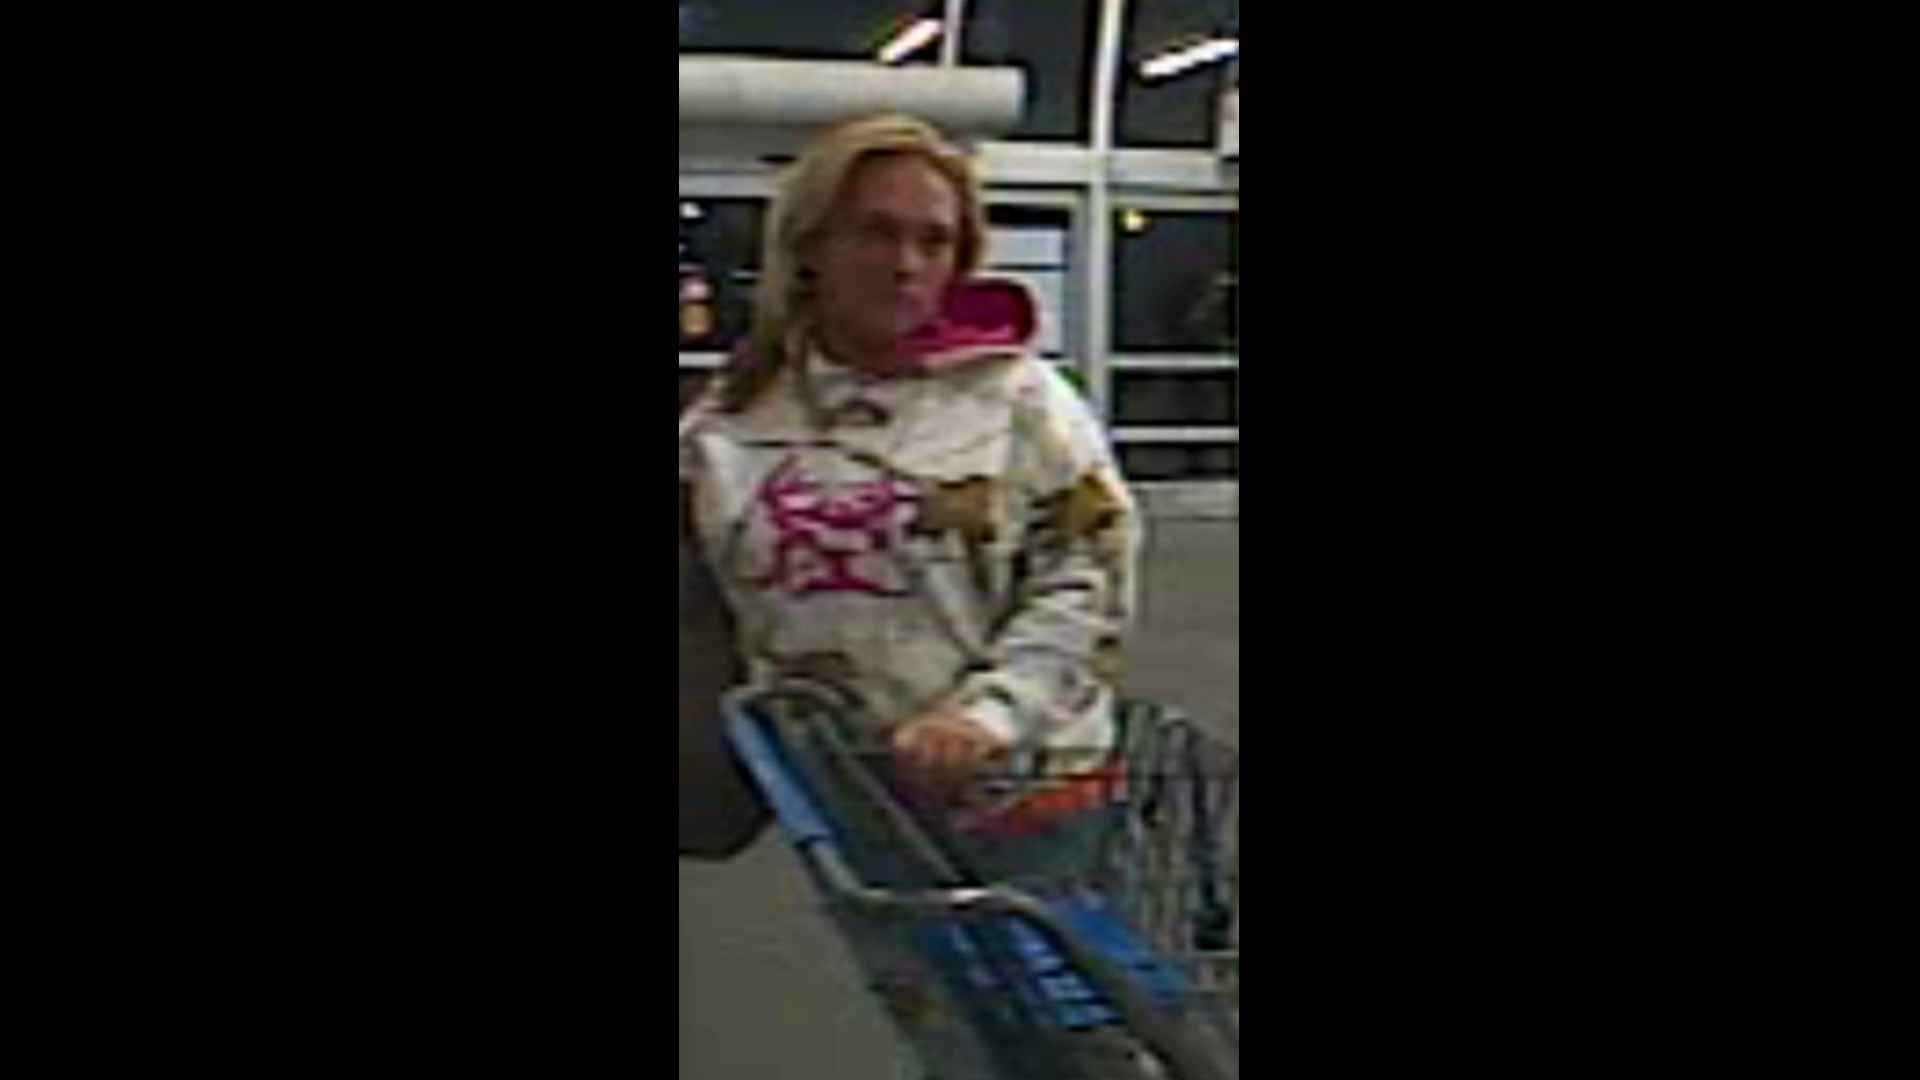 MSP Need Help Identifying Woman Accused Of Stealing From Cadilla